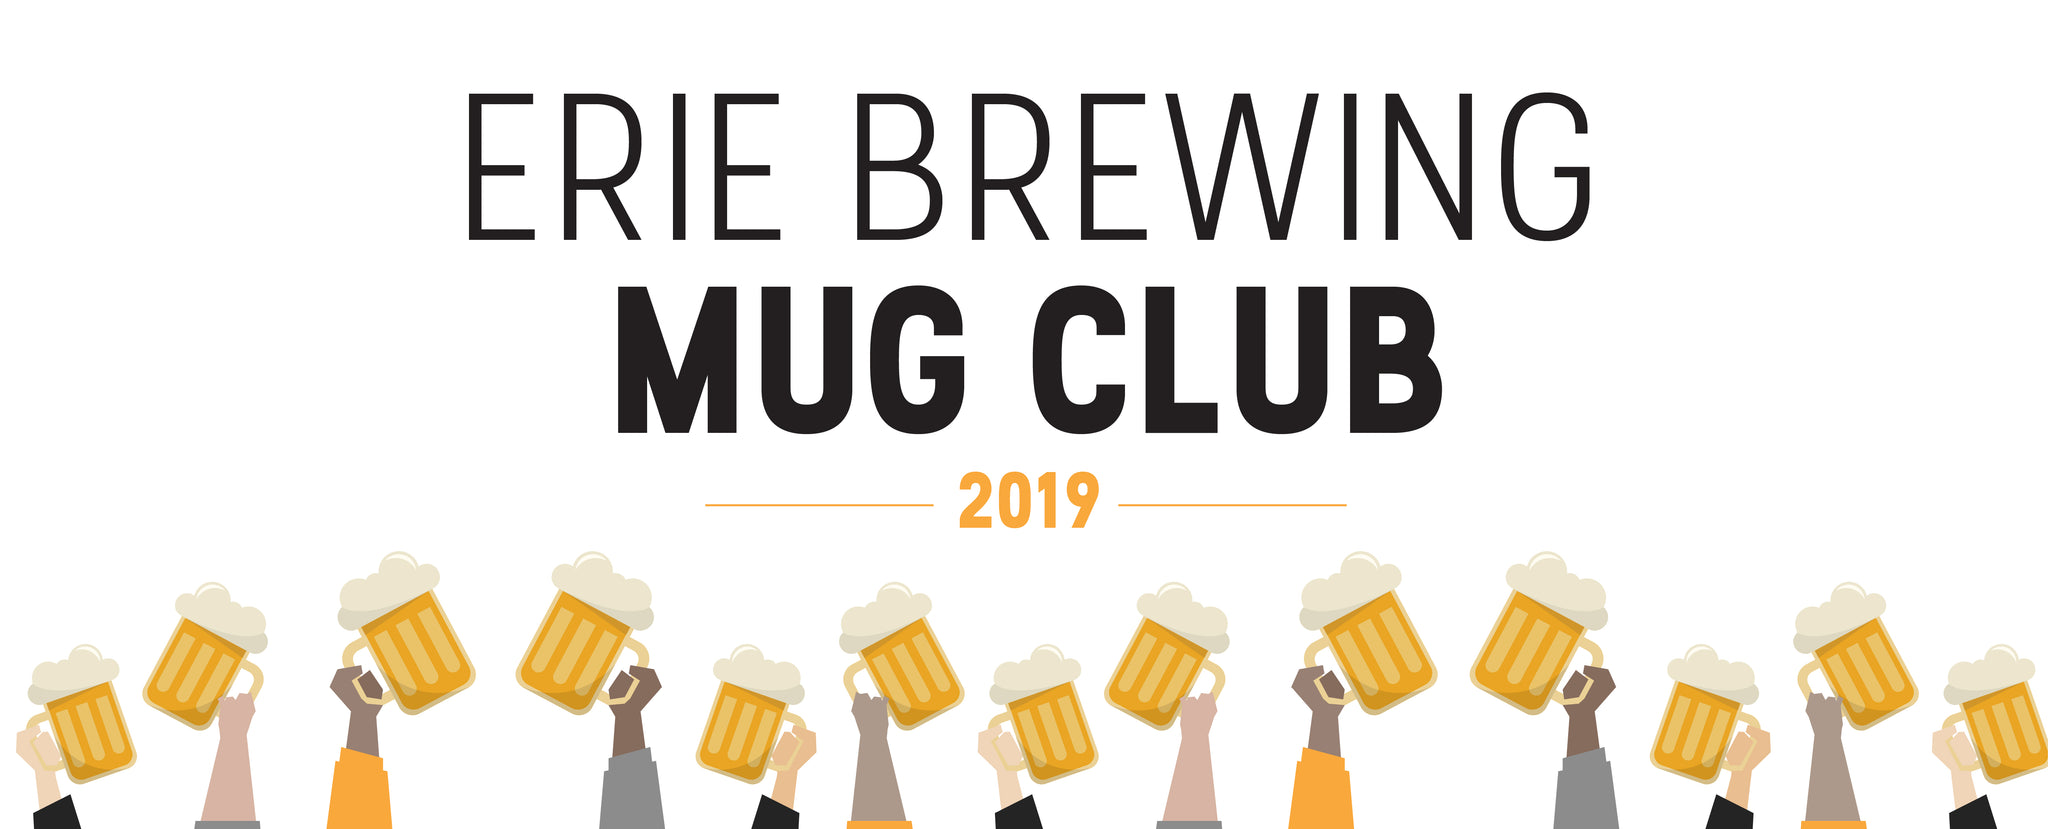 Erie Brewing Mug Club 2019